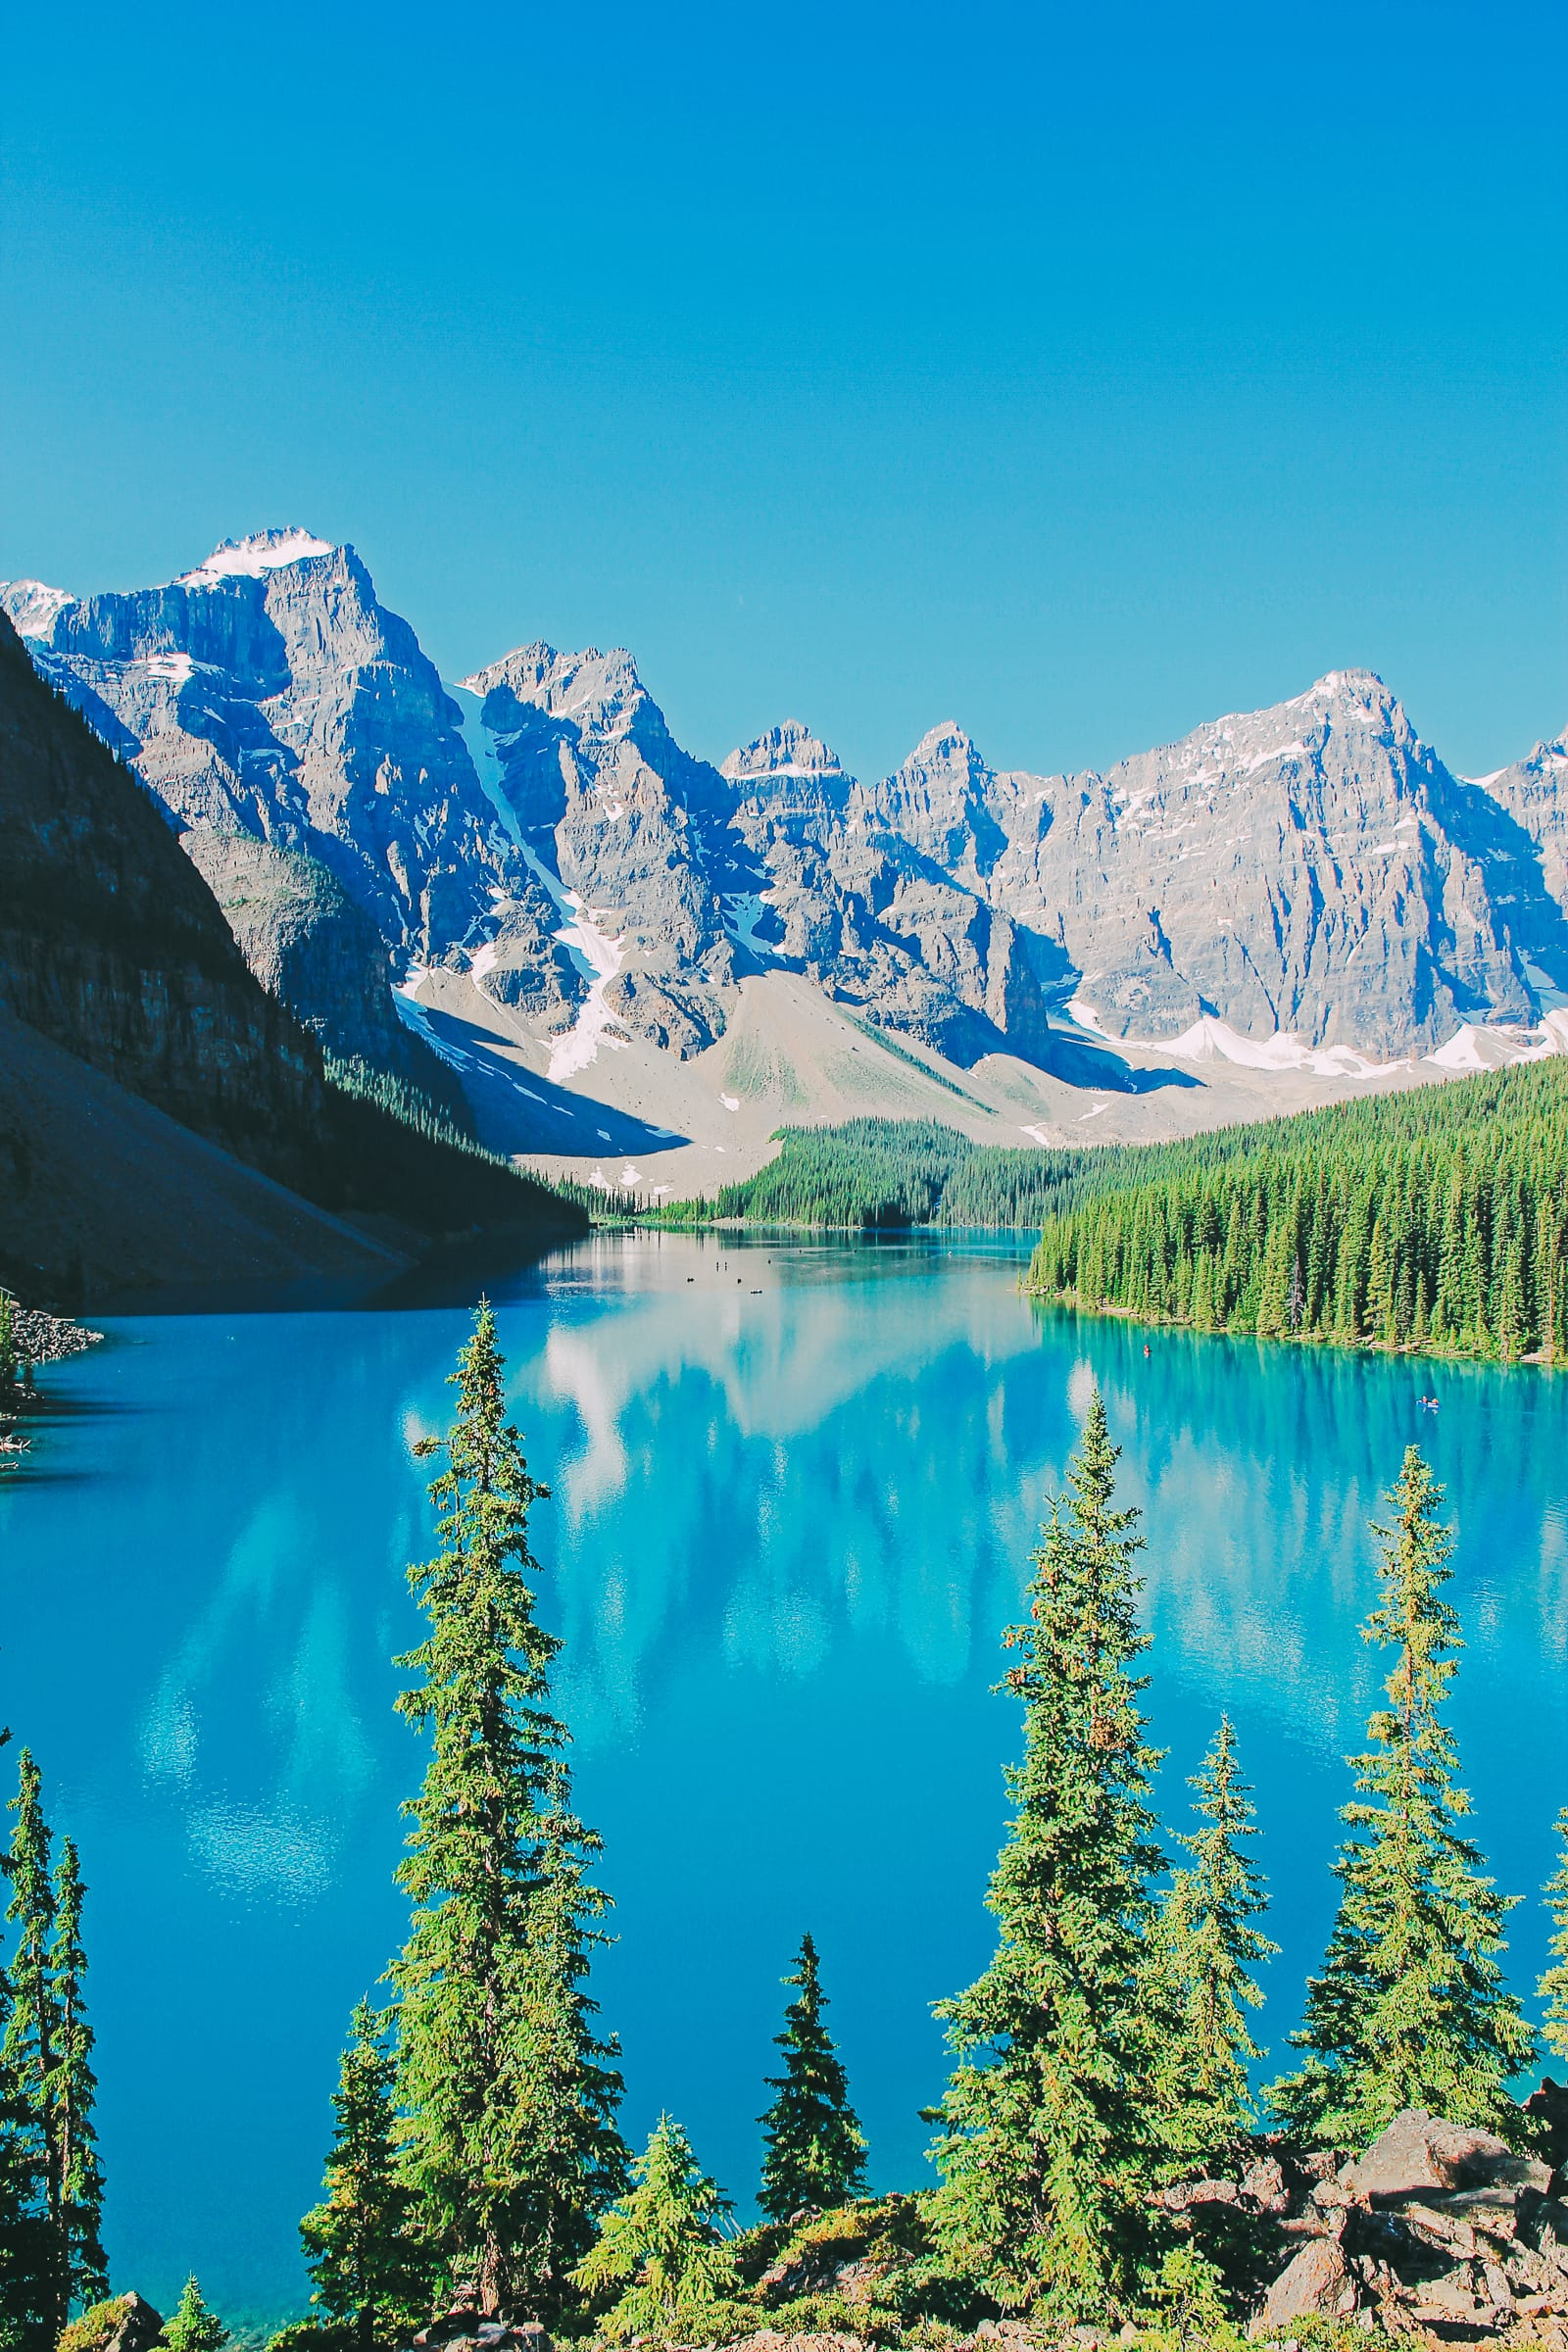 Sights You Have To See In Banff, Canada (4)